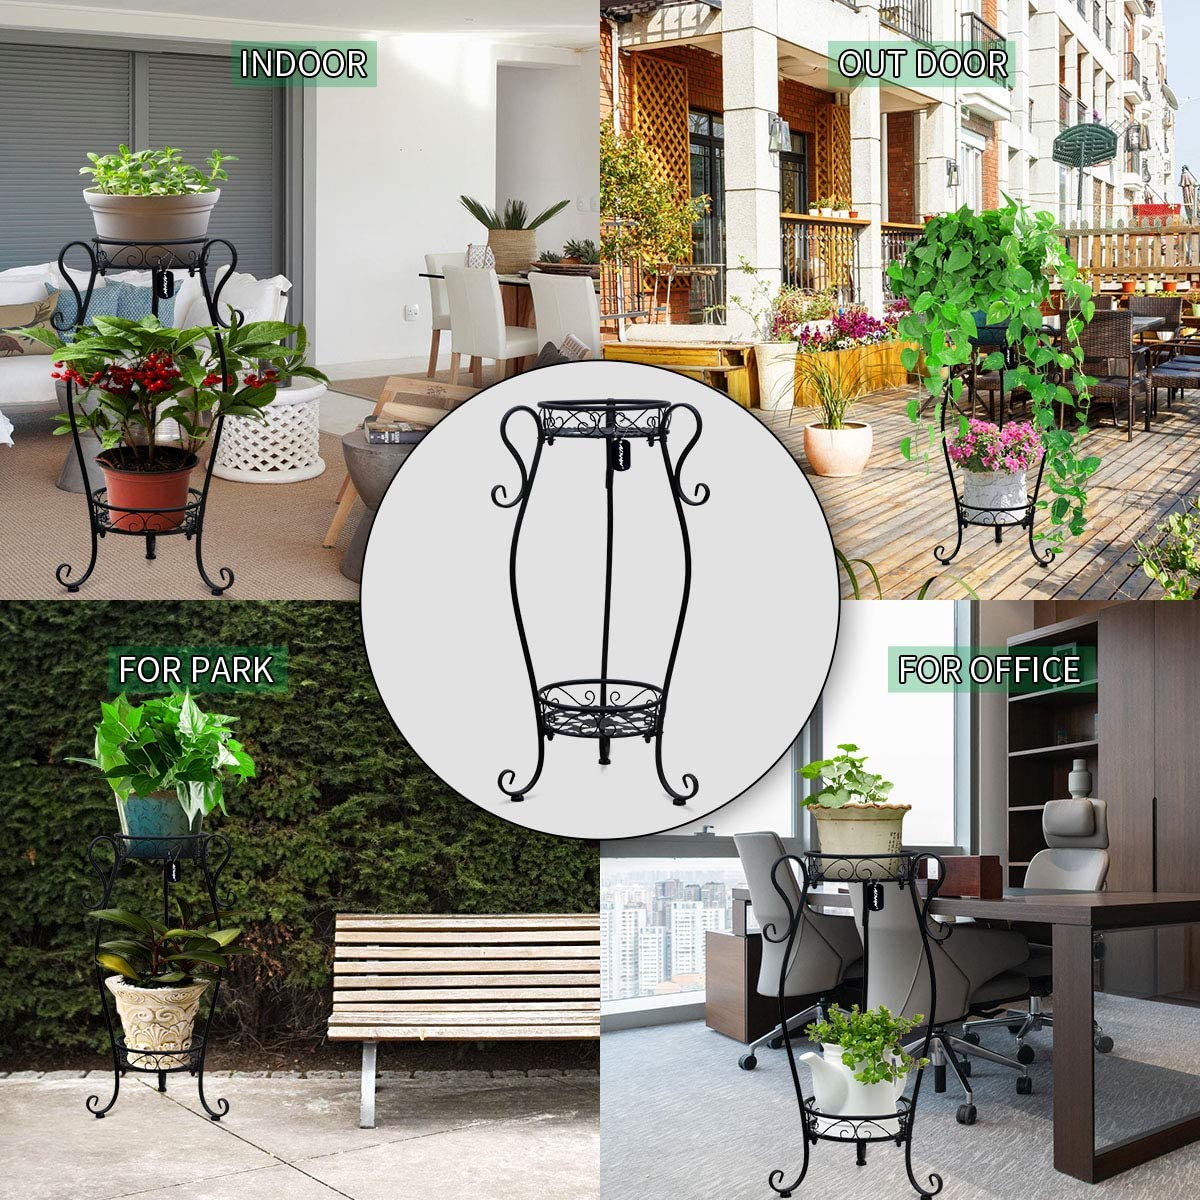 Outdoor Indoor AISHN Metal Plant Stand 2-Tiered Potted,Supports Floor Flower Pot Round Rack Display,Perfect for Home Garden Patio